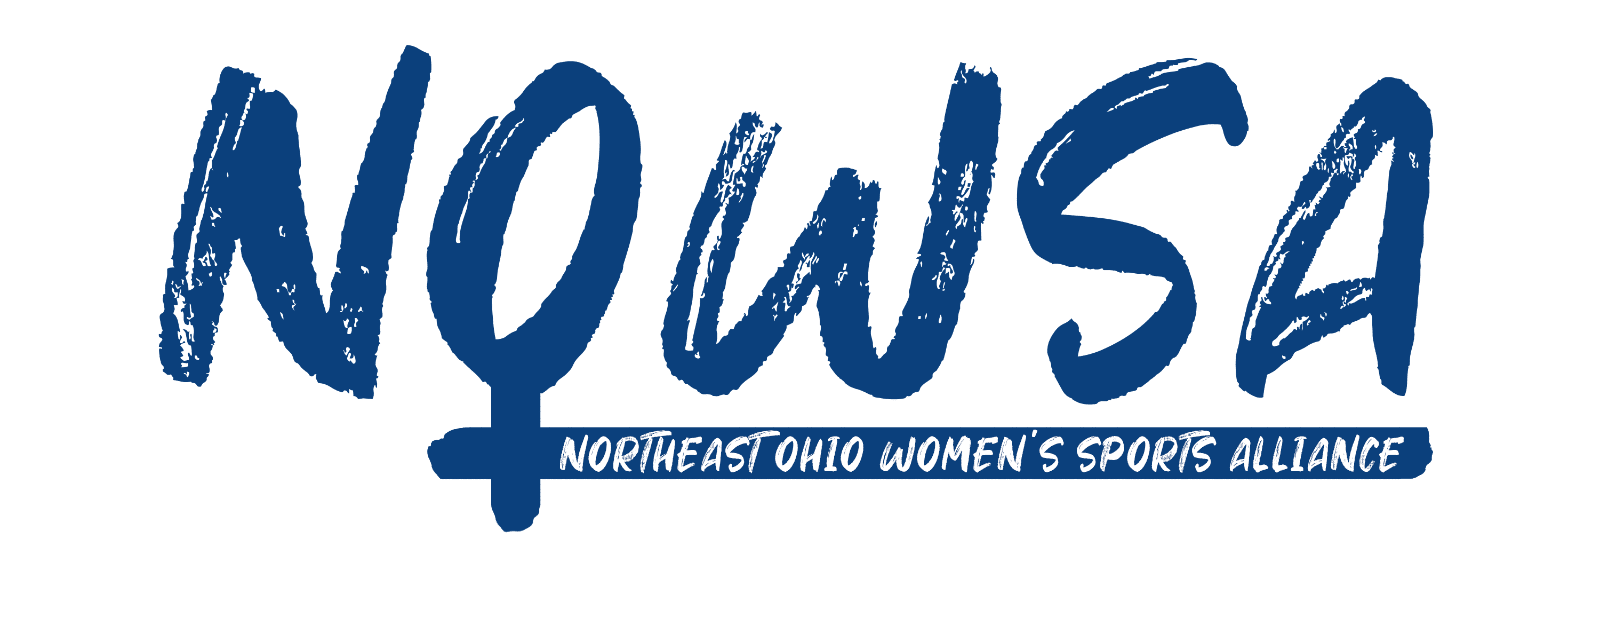 Logo that abbreviates Northeast Ohio Women's Sports Alliance as NOWSA. The O is the female gender symbol ♀